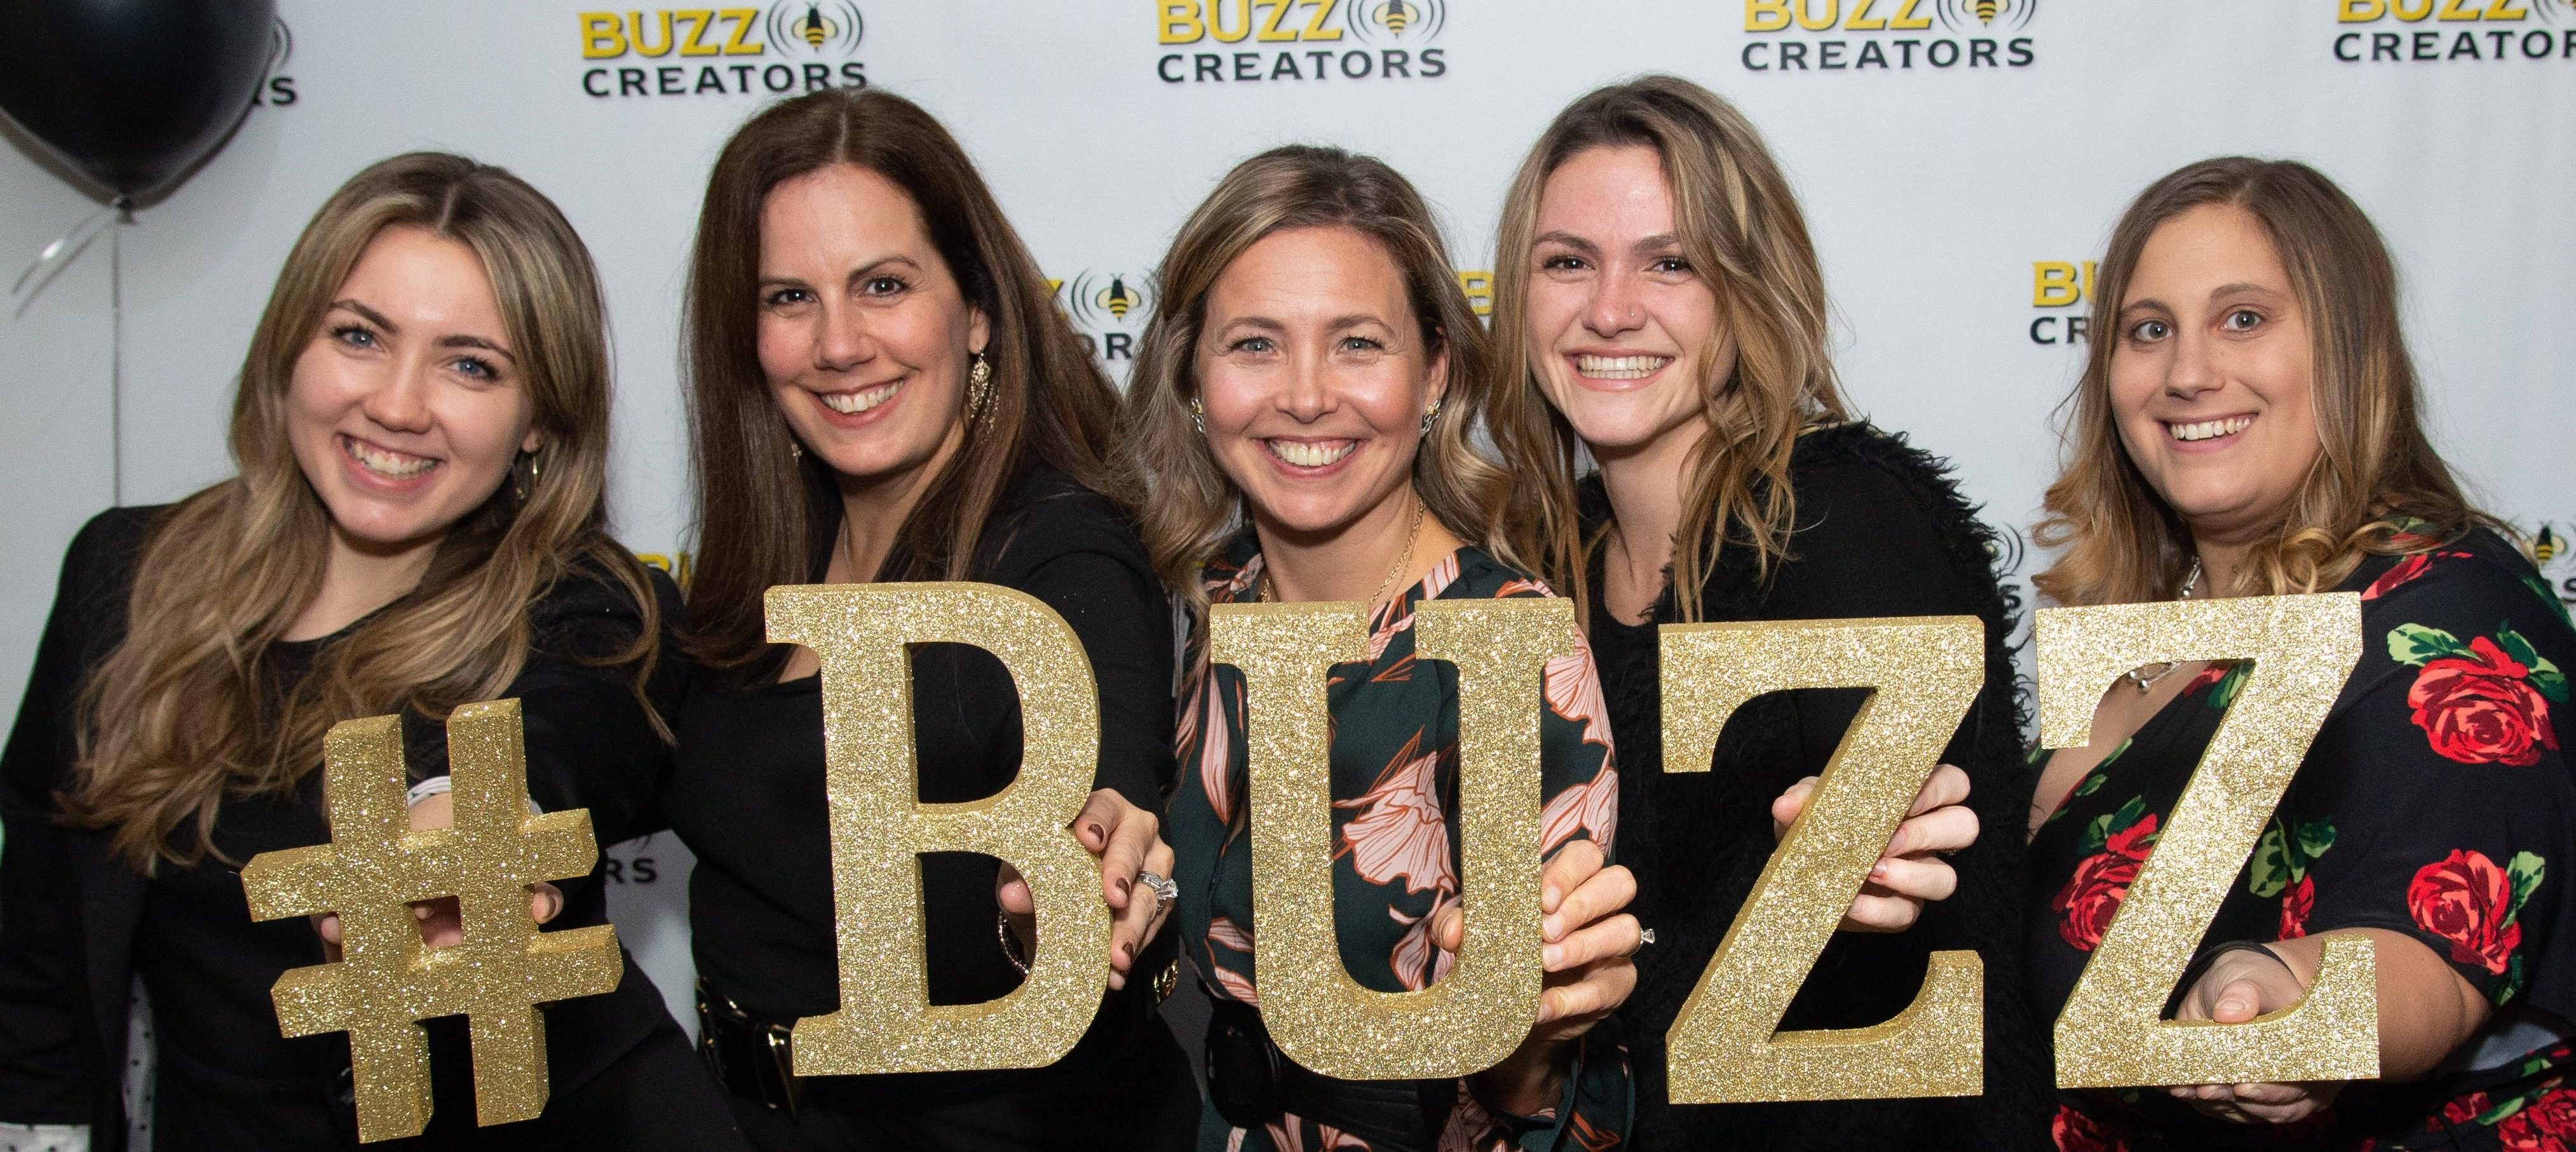 Buzz Creators Celebrates 10 Years of PR & Marketing Pollination